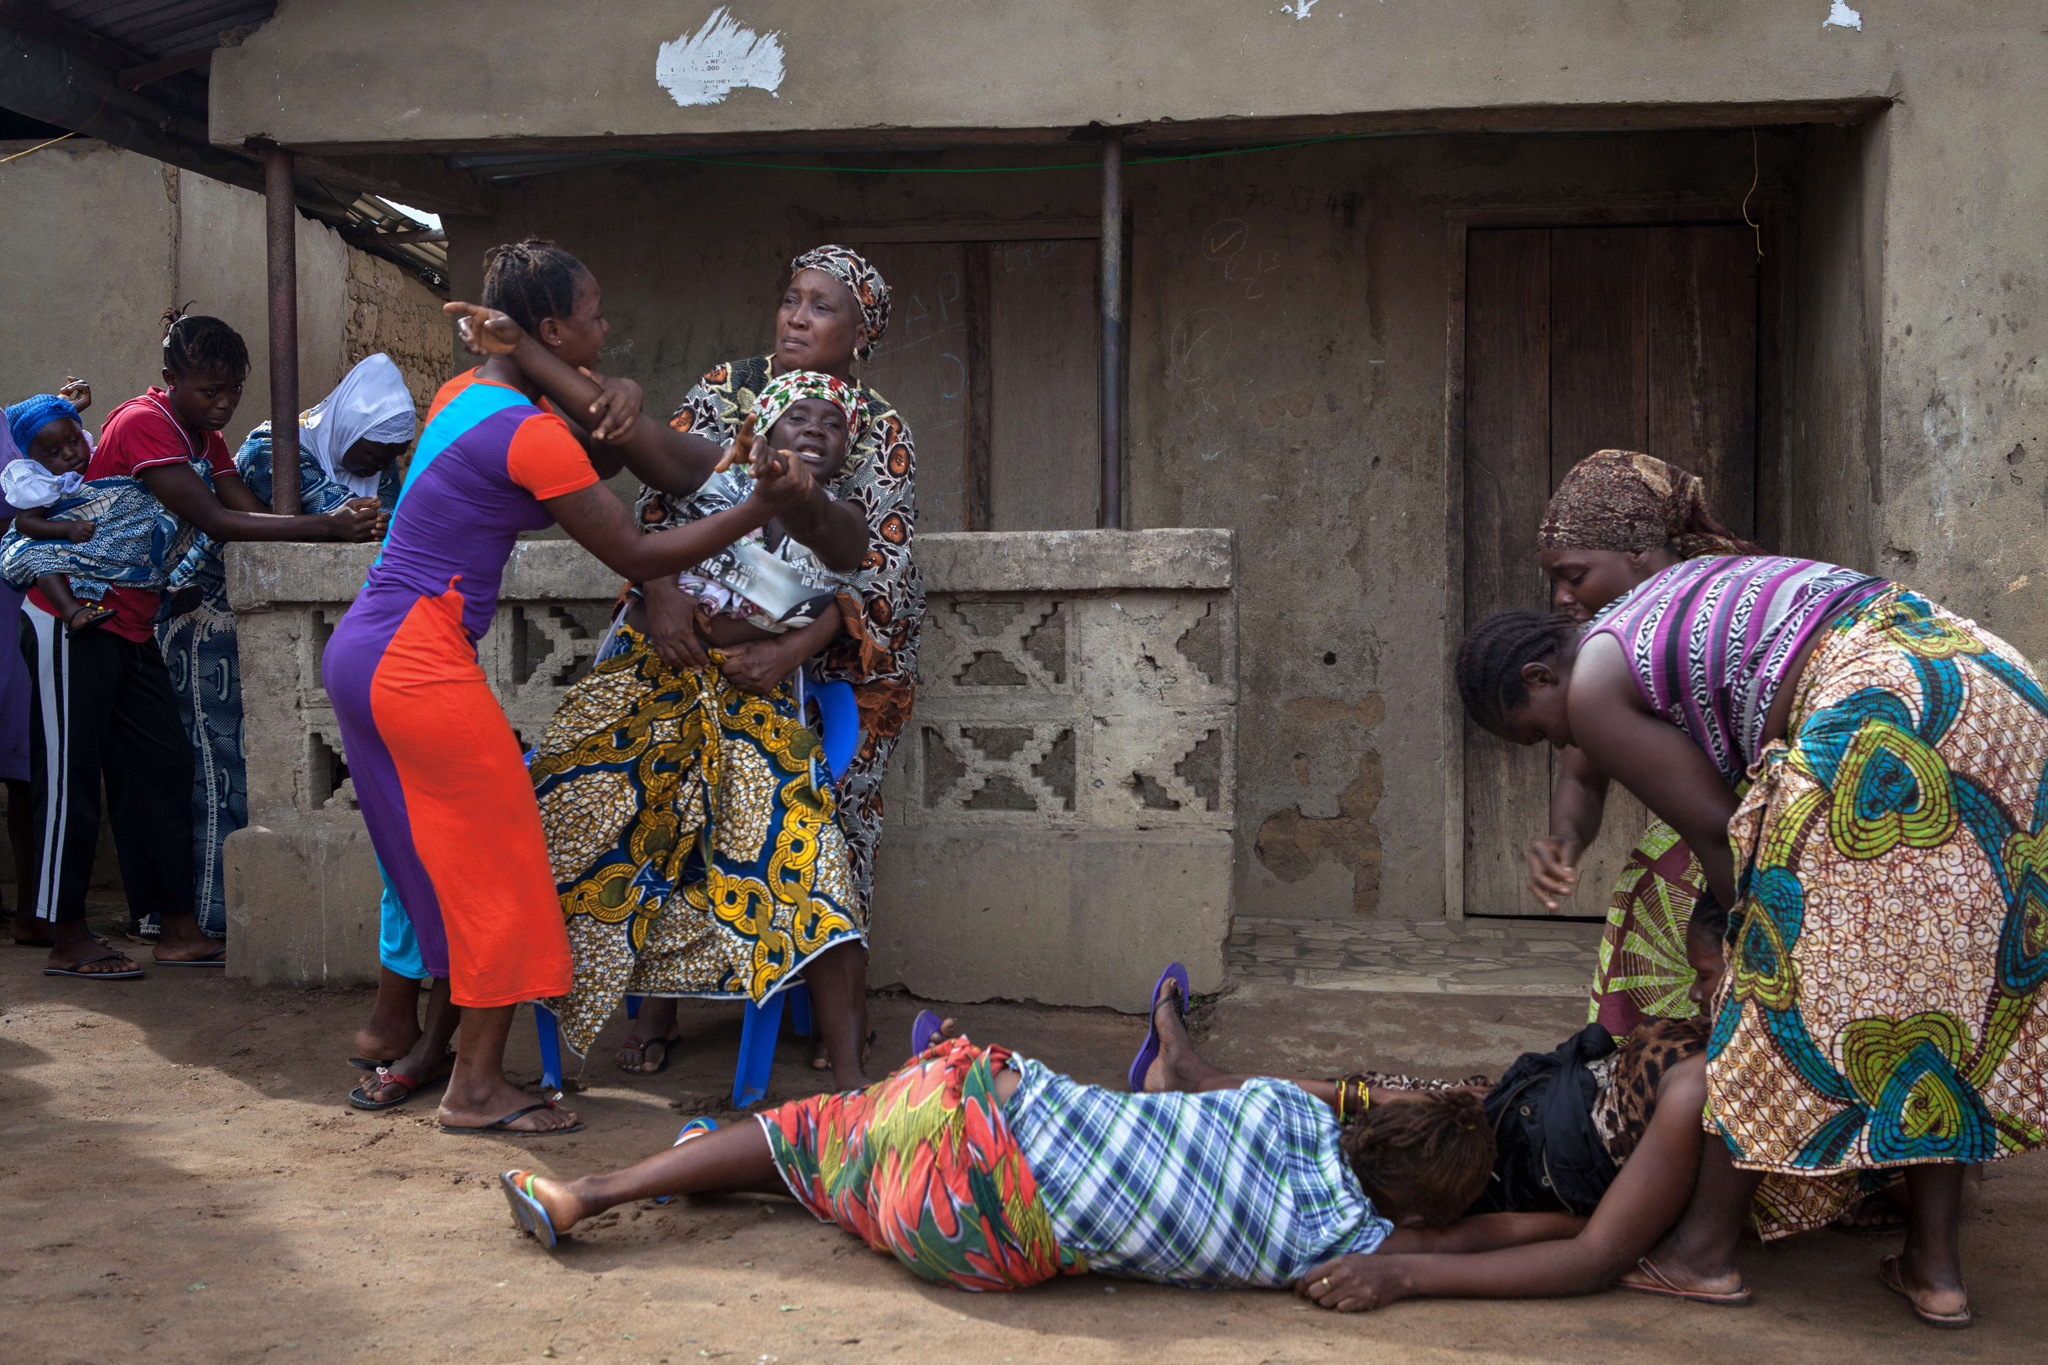 Women faint (Bottom) as another reacts while volunteers (unseen) take away from a nearby house the body of a woman who died of Ebola, in Waterloo, some 30 kilometers southeast of Freetown, on October 7, 2014. Dozens of British military personnel are due to fly to Sierra Leone next week to help build medical facilities to combat the Ebola epidemic, the defence ministry said on October 7.  AFP PHOTO / FLORIAN PLAUCHEURFLORIAN PLAUCHEUR/AFP/Getty Images